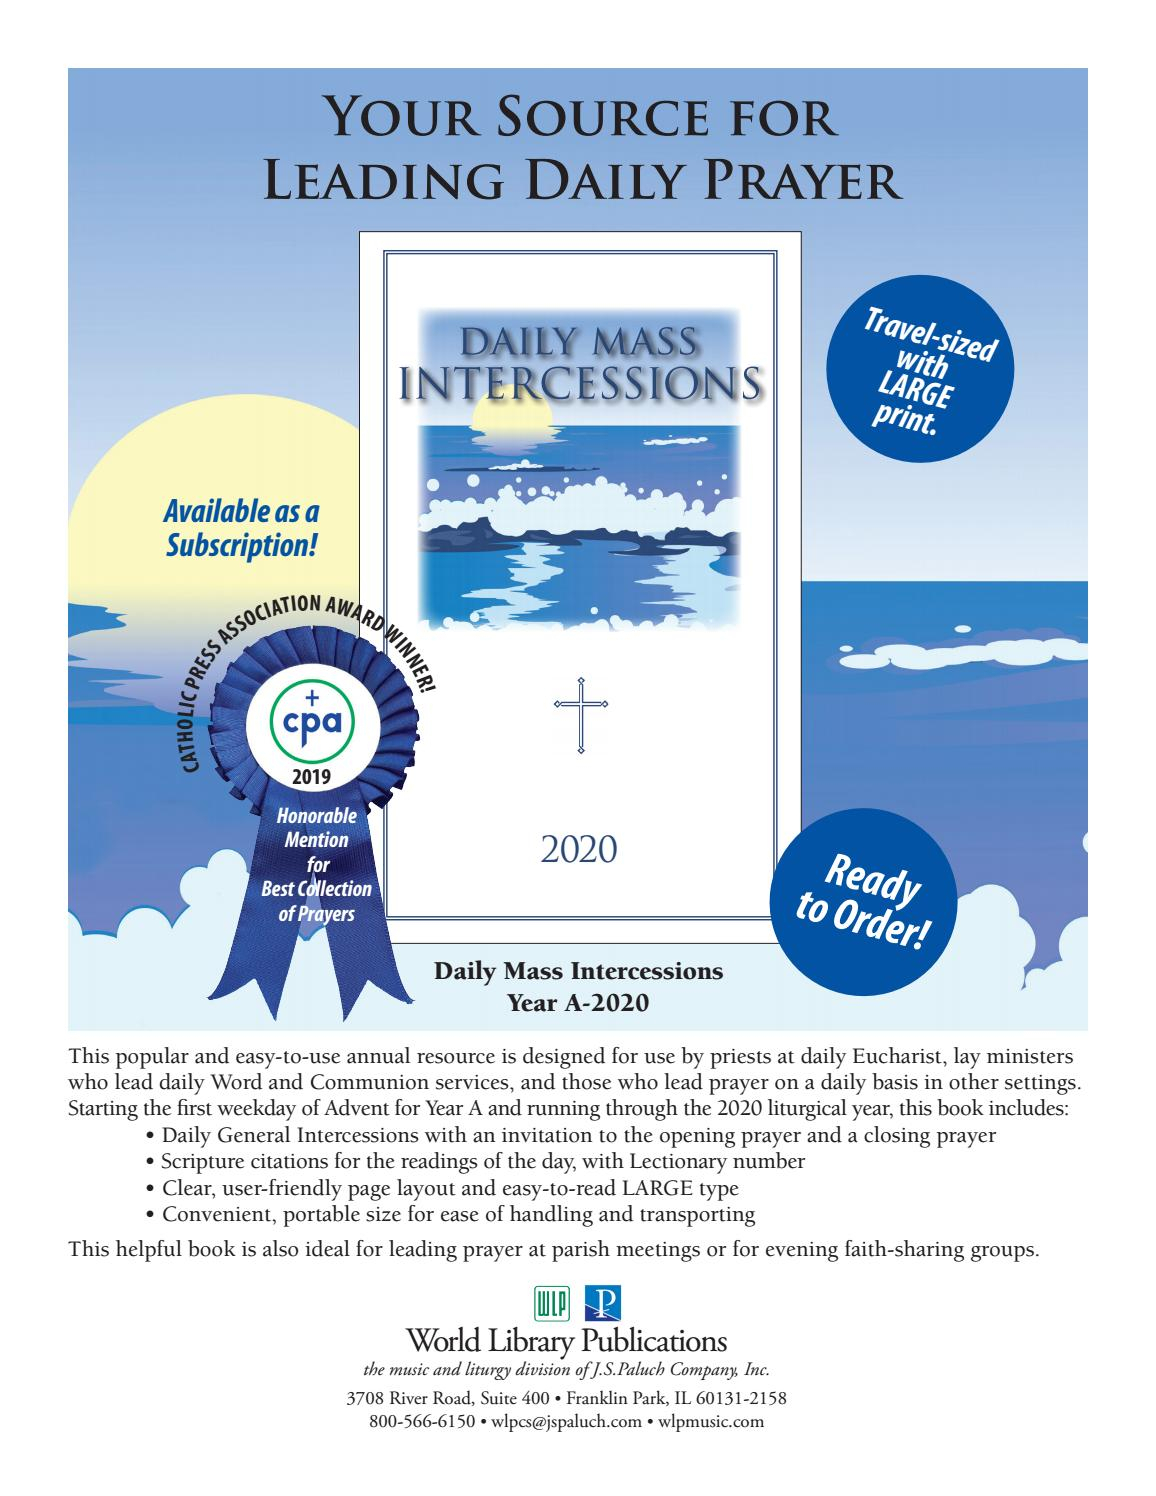 Daily Mass Intercessions 2020 By World Library Publications